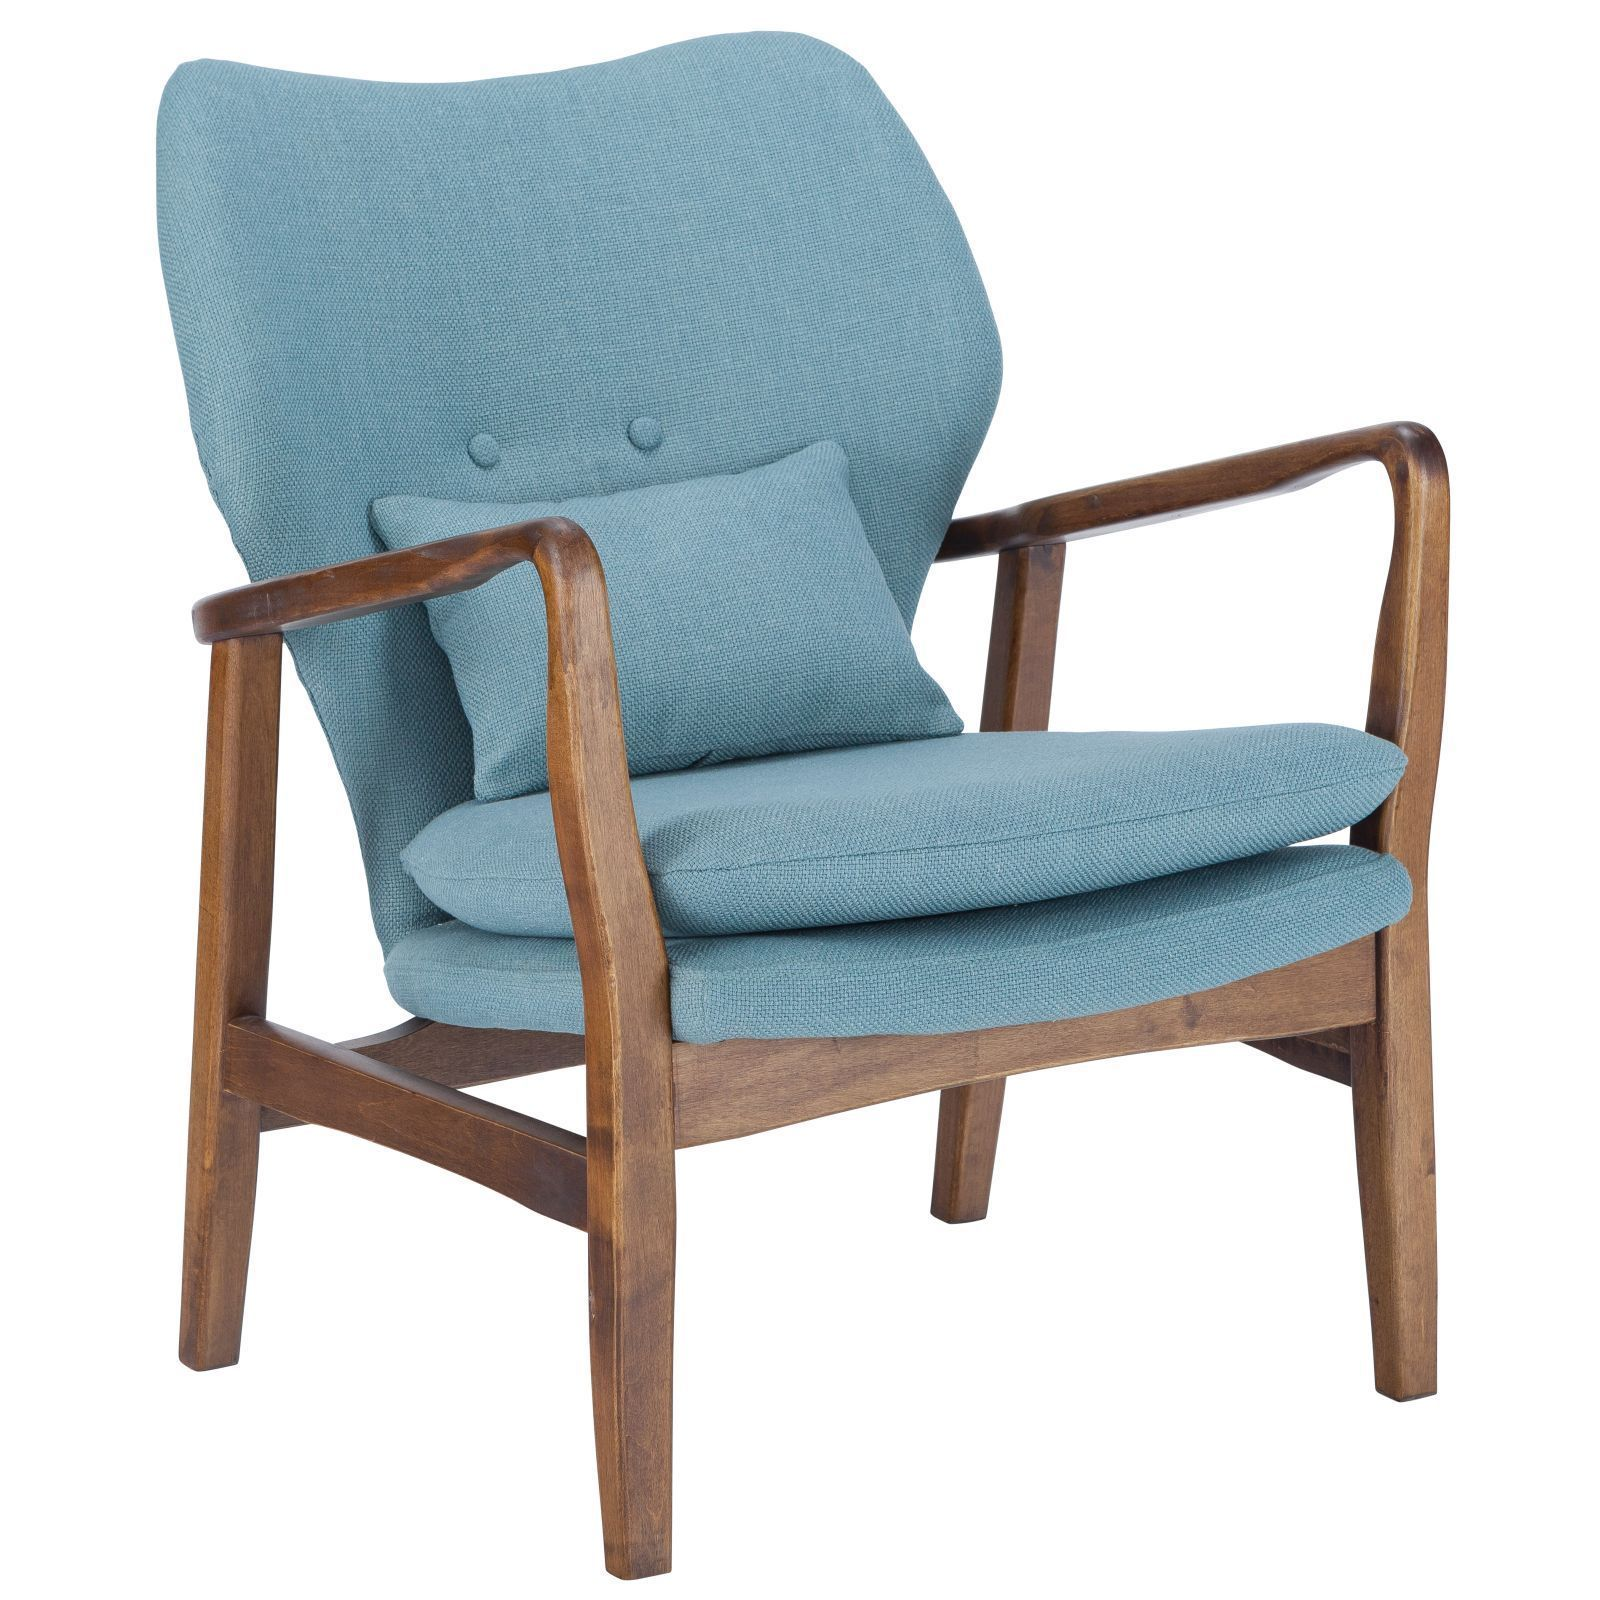 Shop Poly and Bark Atreya Walnut Wood Chair - On Sale - Free ...